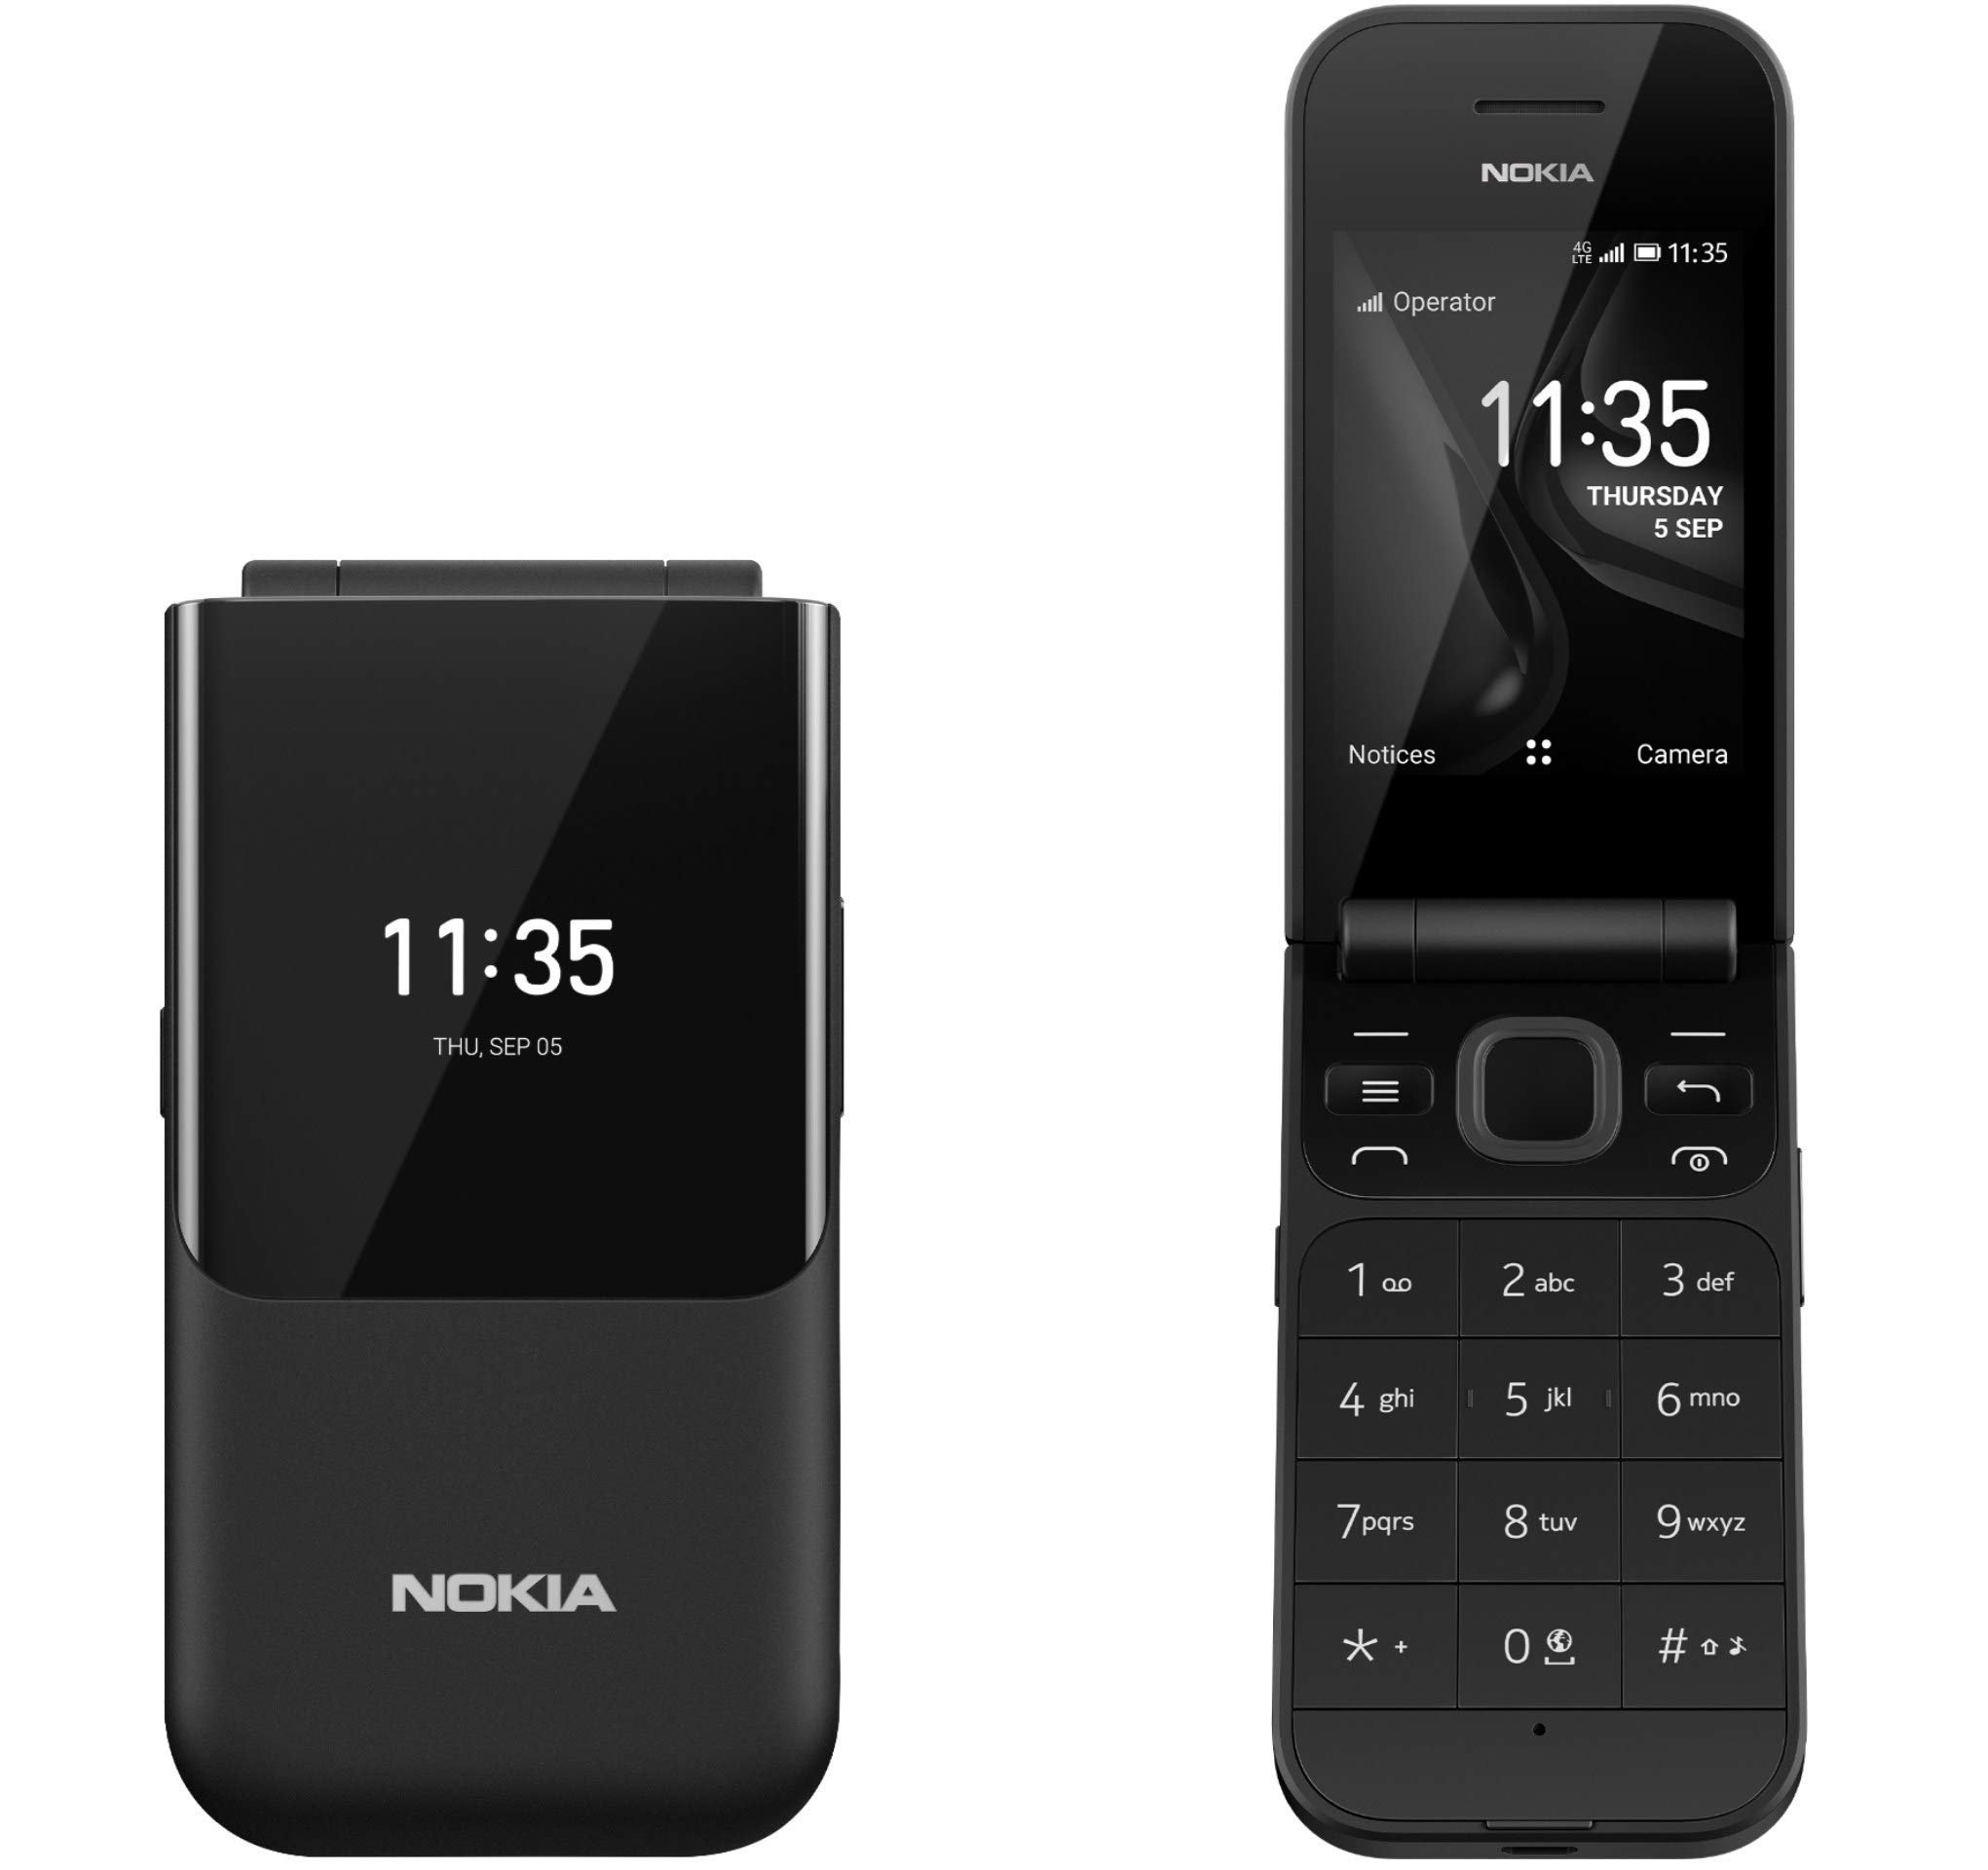 Nokia 2720 Flip Caracteristicas E Especificacoes Analise Opinioes Phonesdata